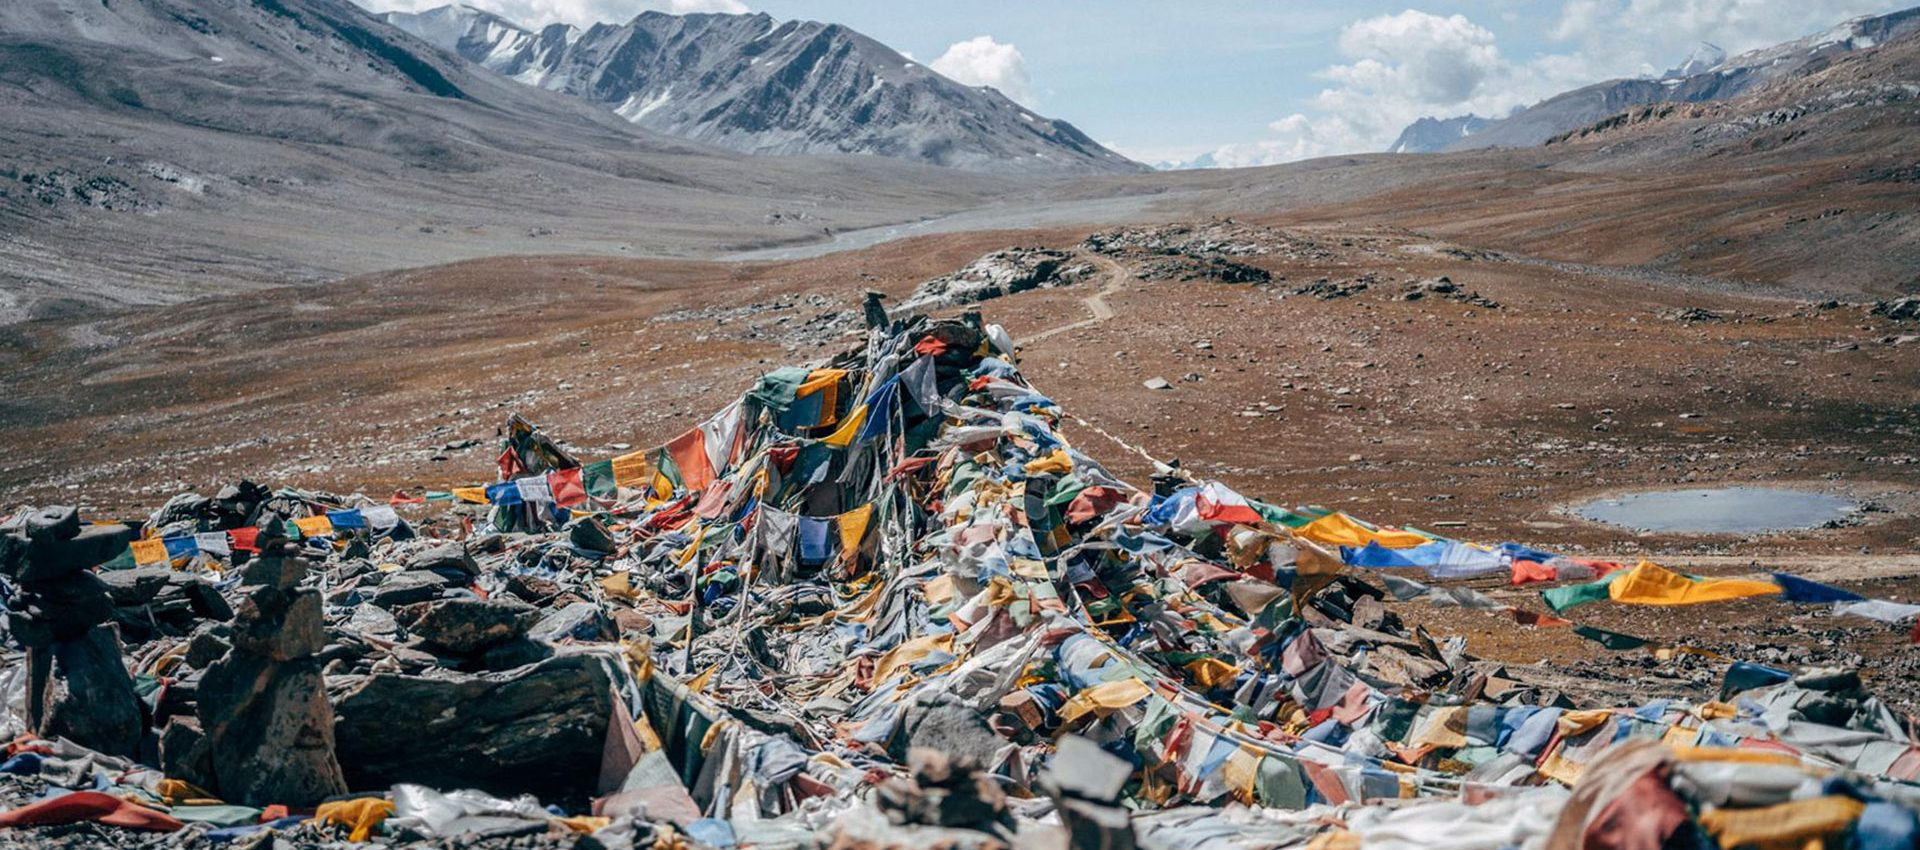 The mantras of the prayer flags are carried by the wind, spreading peace, compassion, strength, and wisdom.